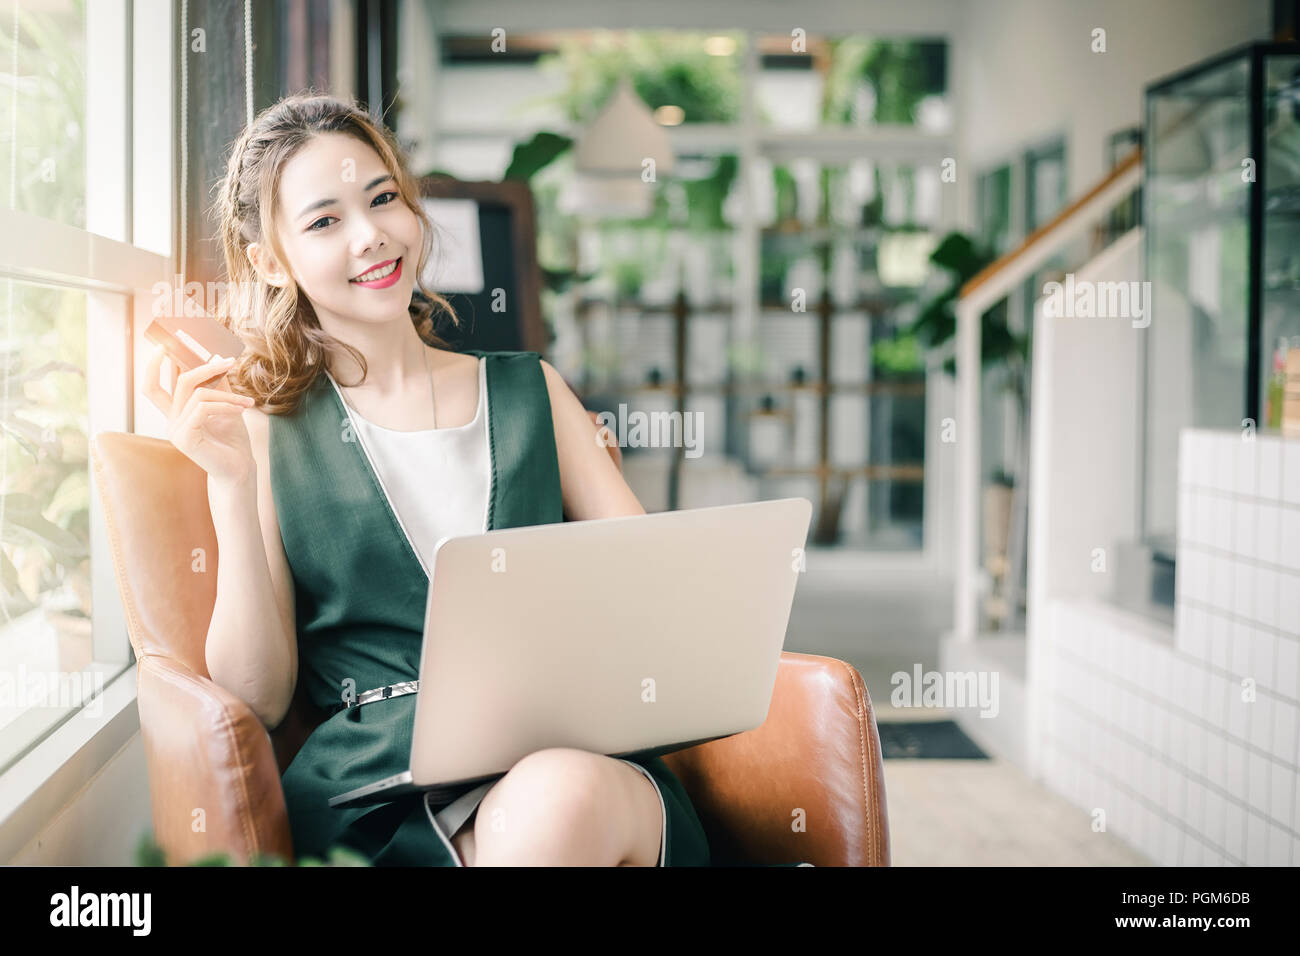 Beautiful Asian woman holding credit card and working on laptop or notebook computer. - Stock Image